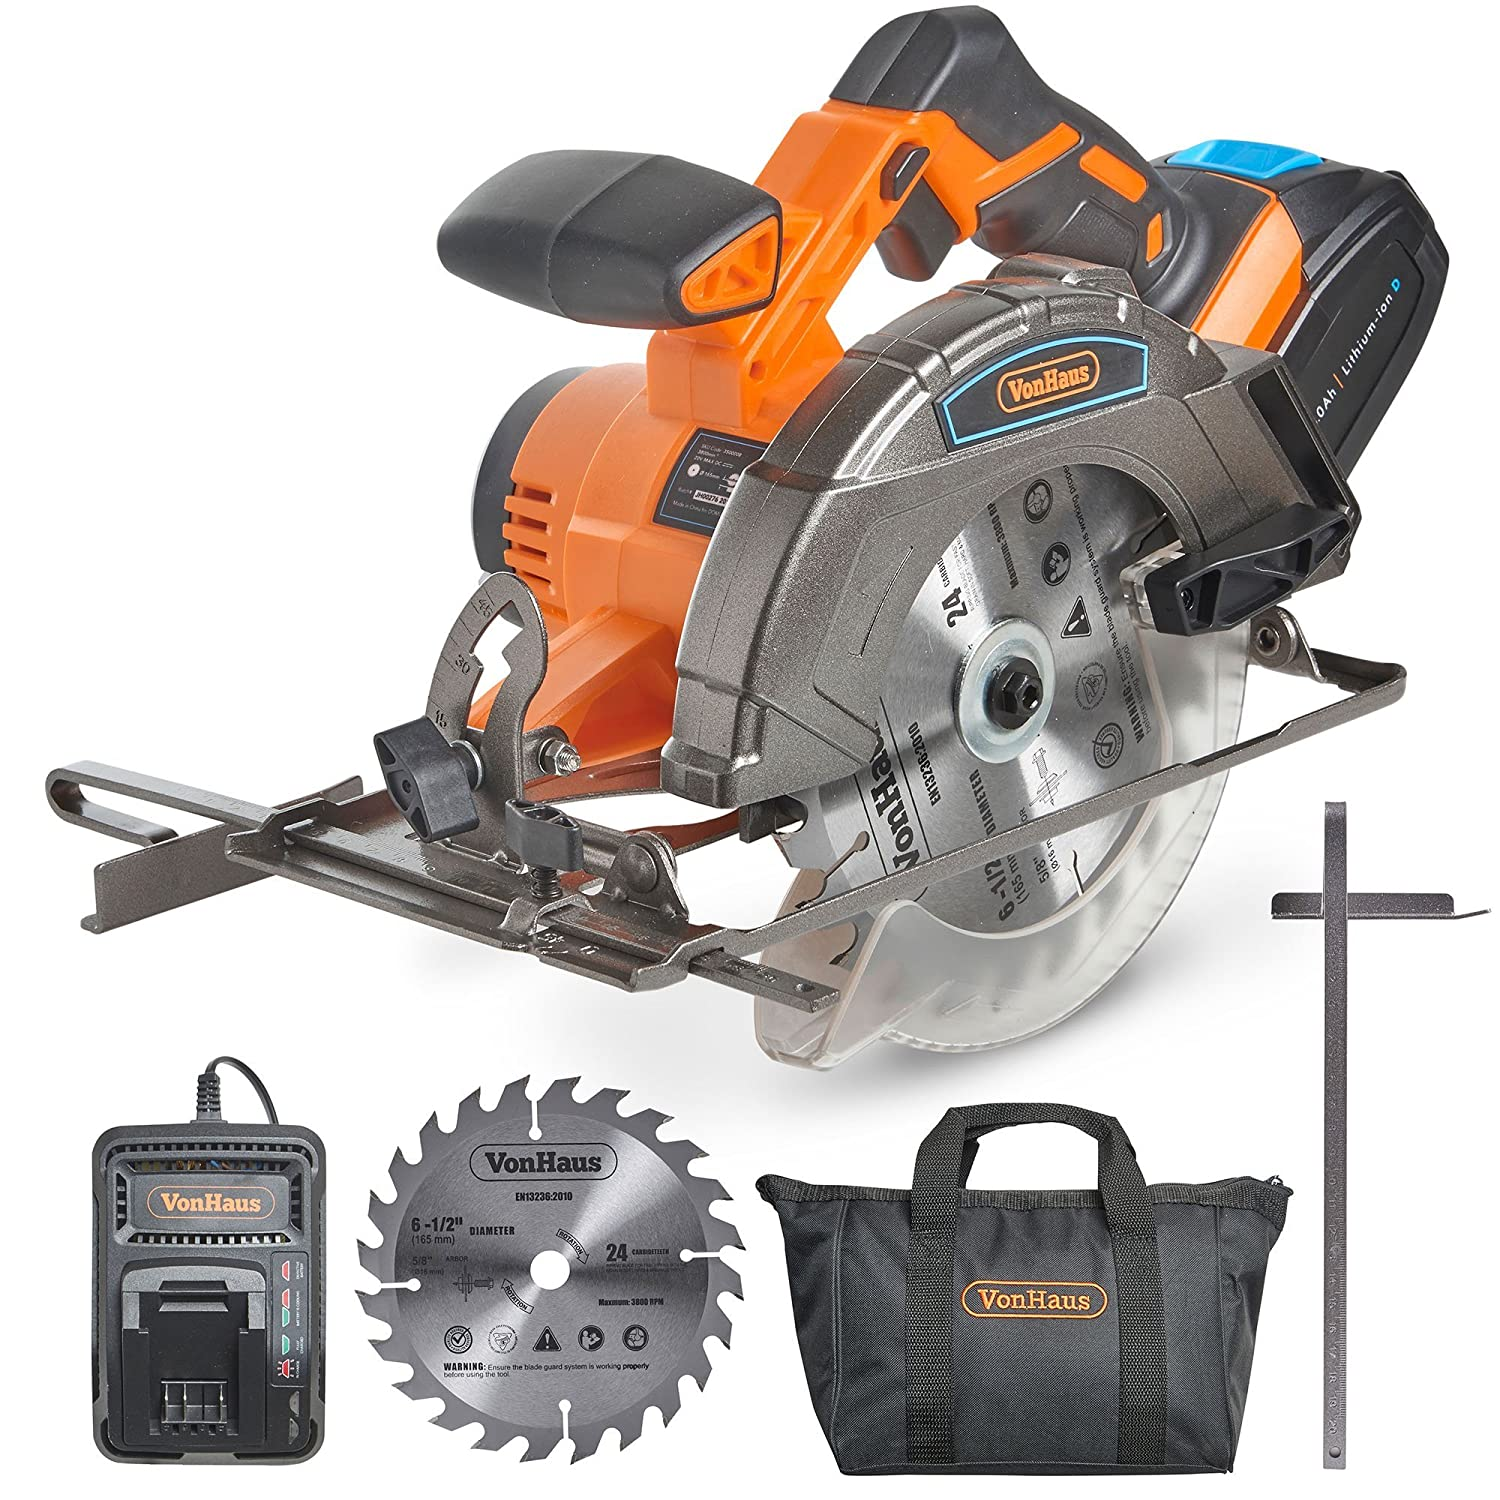 "#6 - VonHaus 20V MAX Cordless Circular Saw with Brake and 2x 6-1/2"" Saw Blades - 3.0Ah Lithium-Ion Battery and Charger Kit Included"